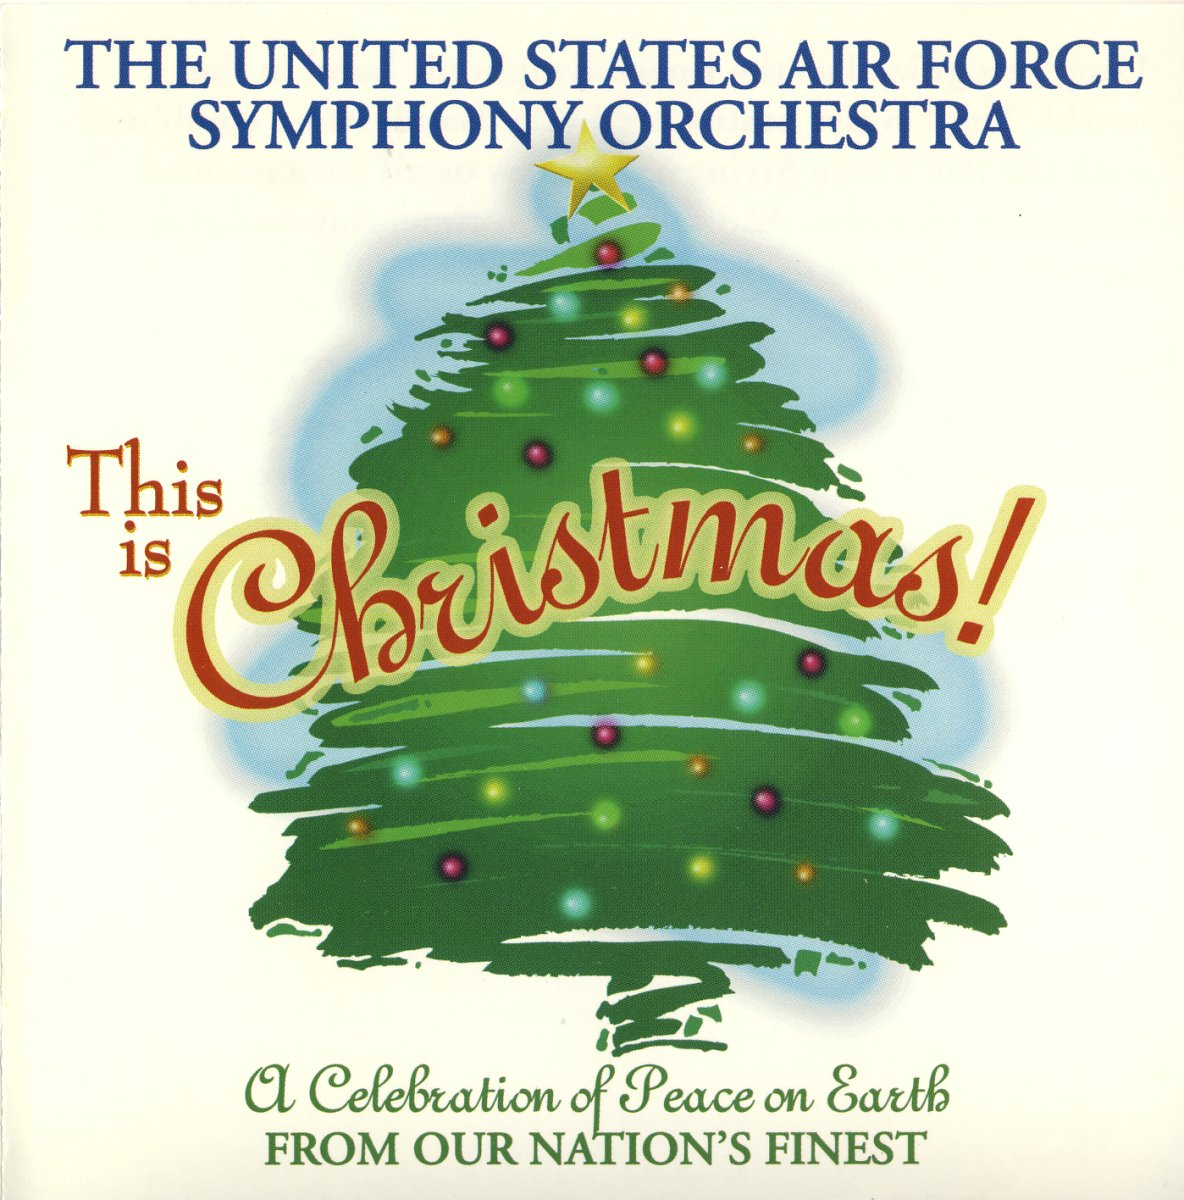 The United States Air Force Symp Orchest - This is Christmas! - The ...